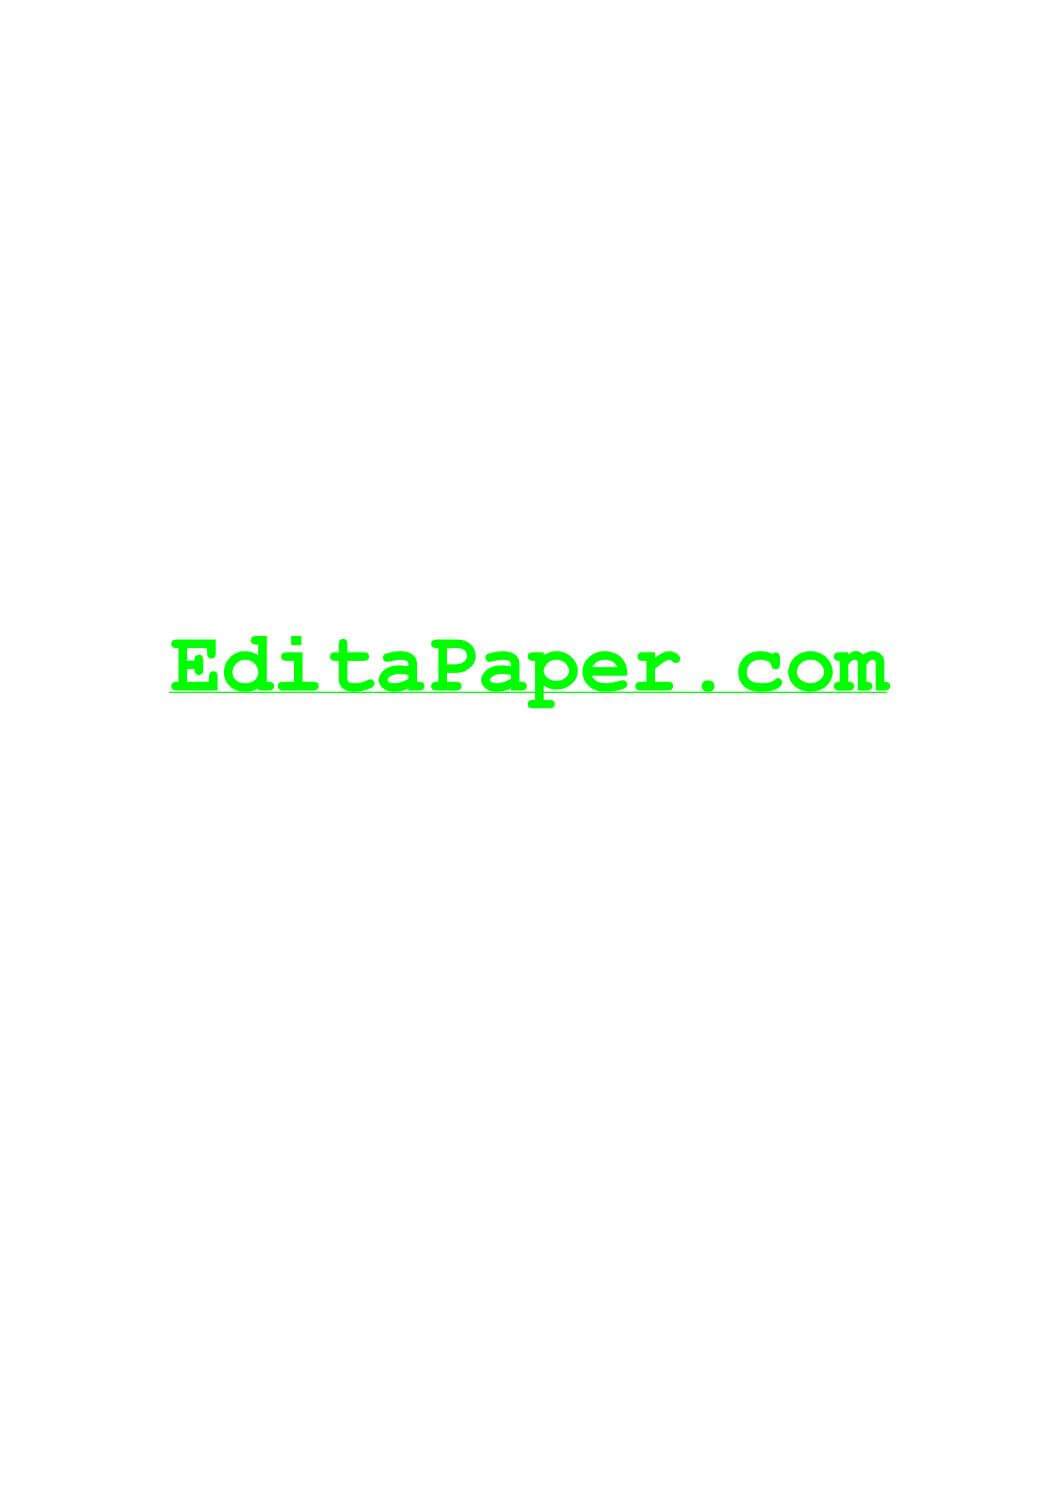 Apa Format Essay Template Word 2010Courtneysxkq – Issuu In Apa Template For Word 2010